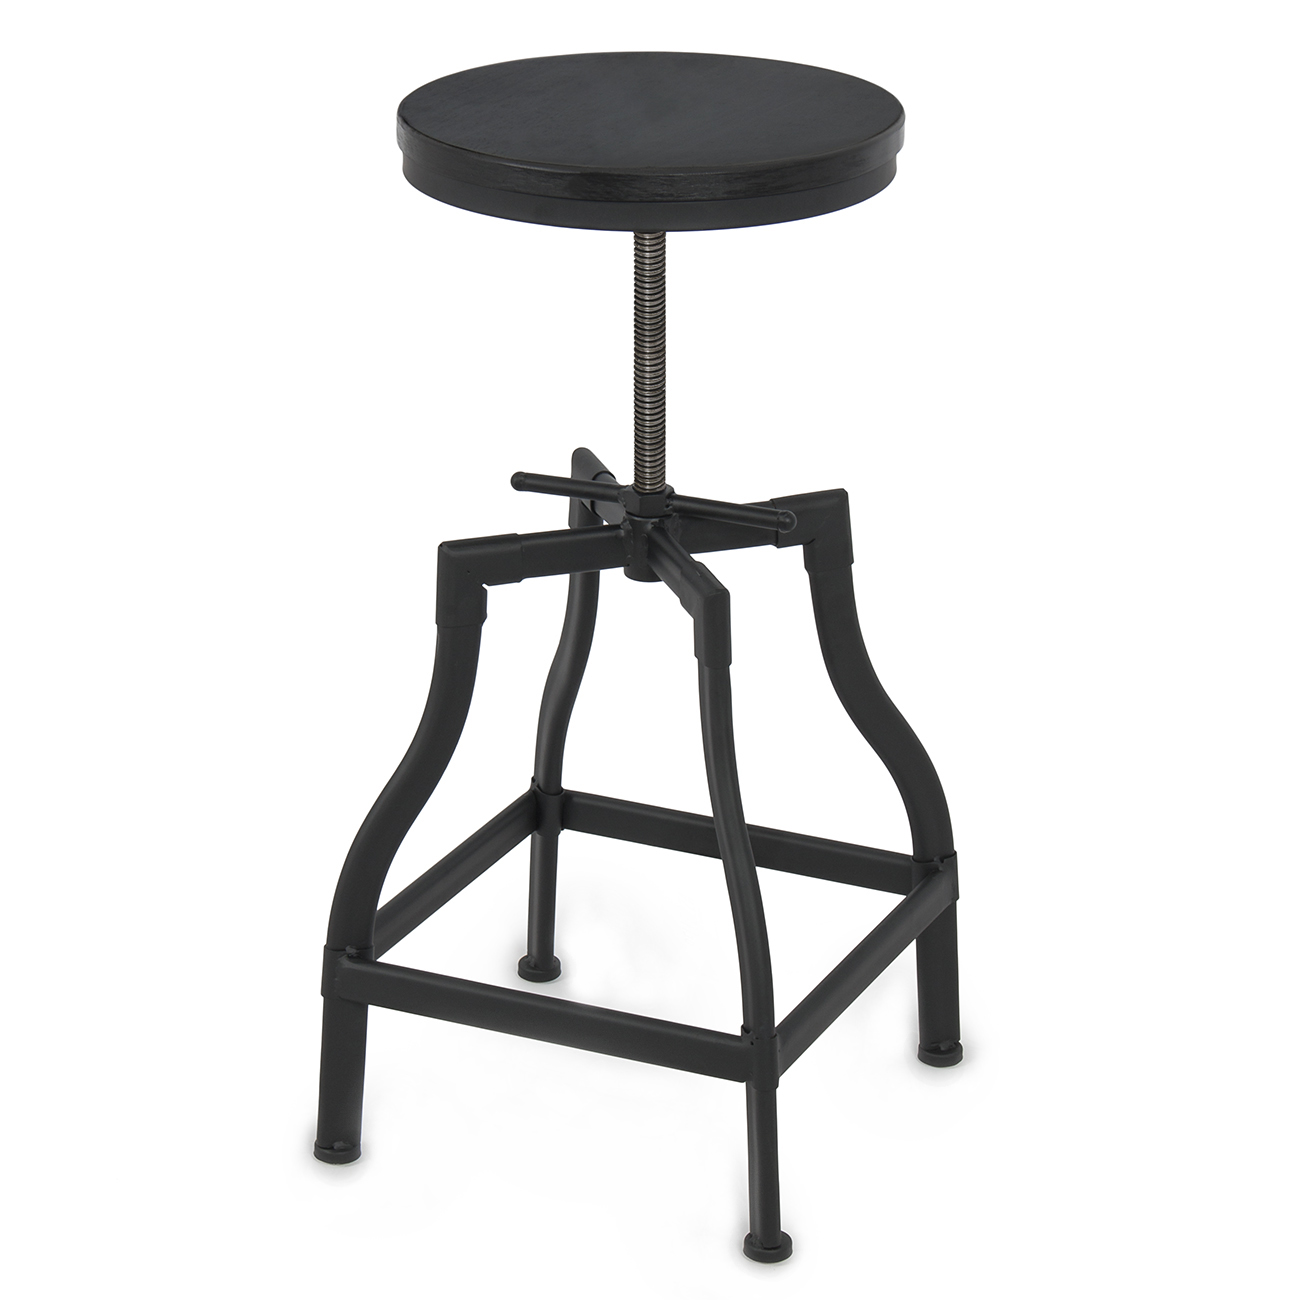 Industrial Vintage Wood Stool Adjustable Height Rustic  : 014 hg 301011 from www.ebay.com size 1300 x 1300 jpeg 301kB